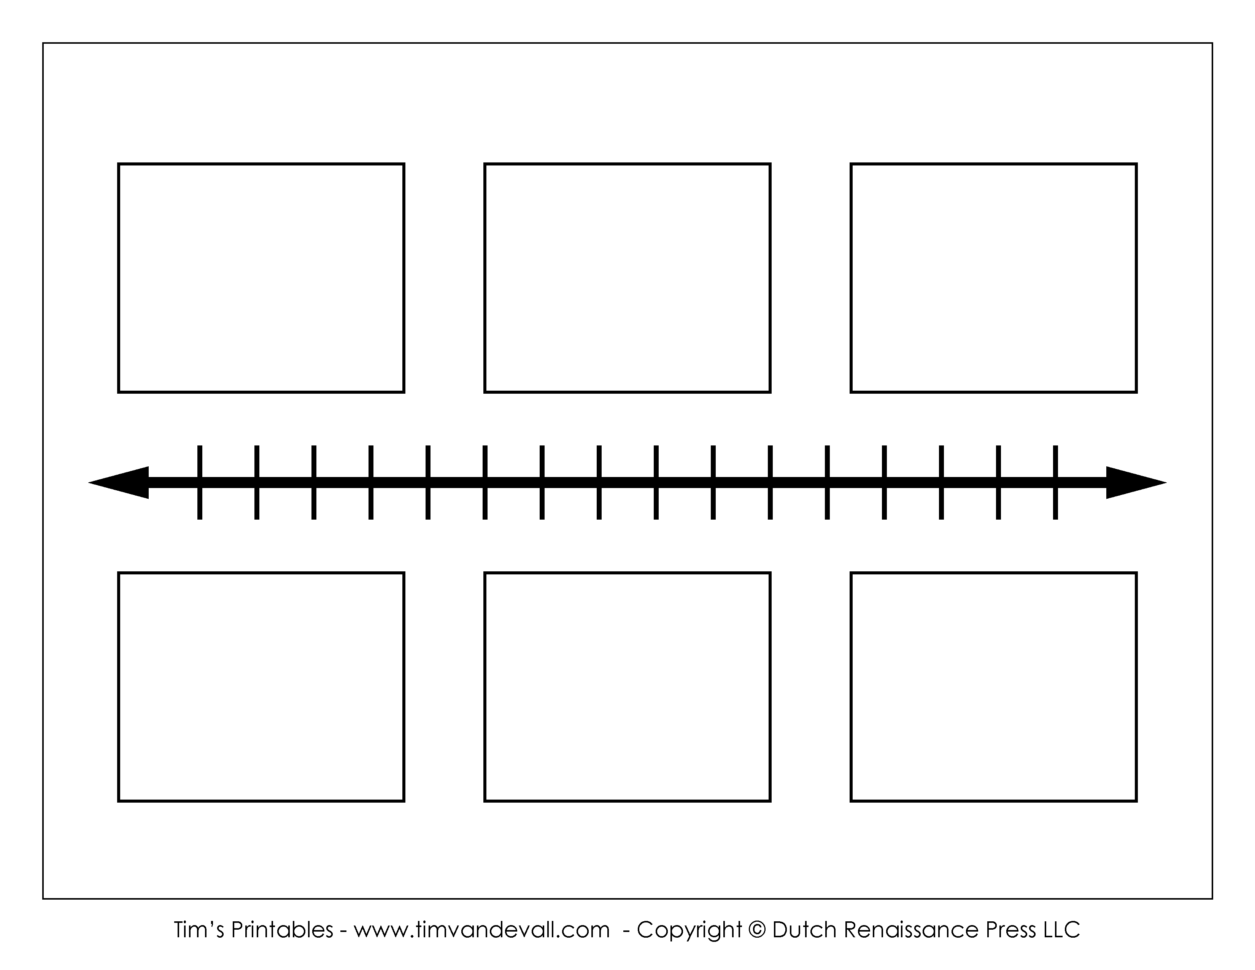 Blank Timeline Template   Tim's Printables To School Project Timeline Templates